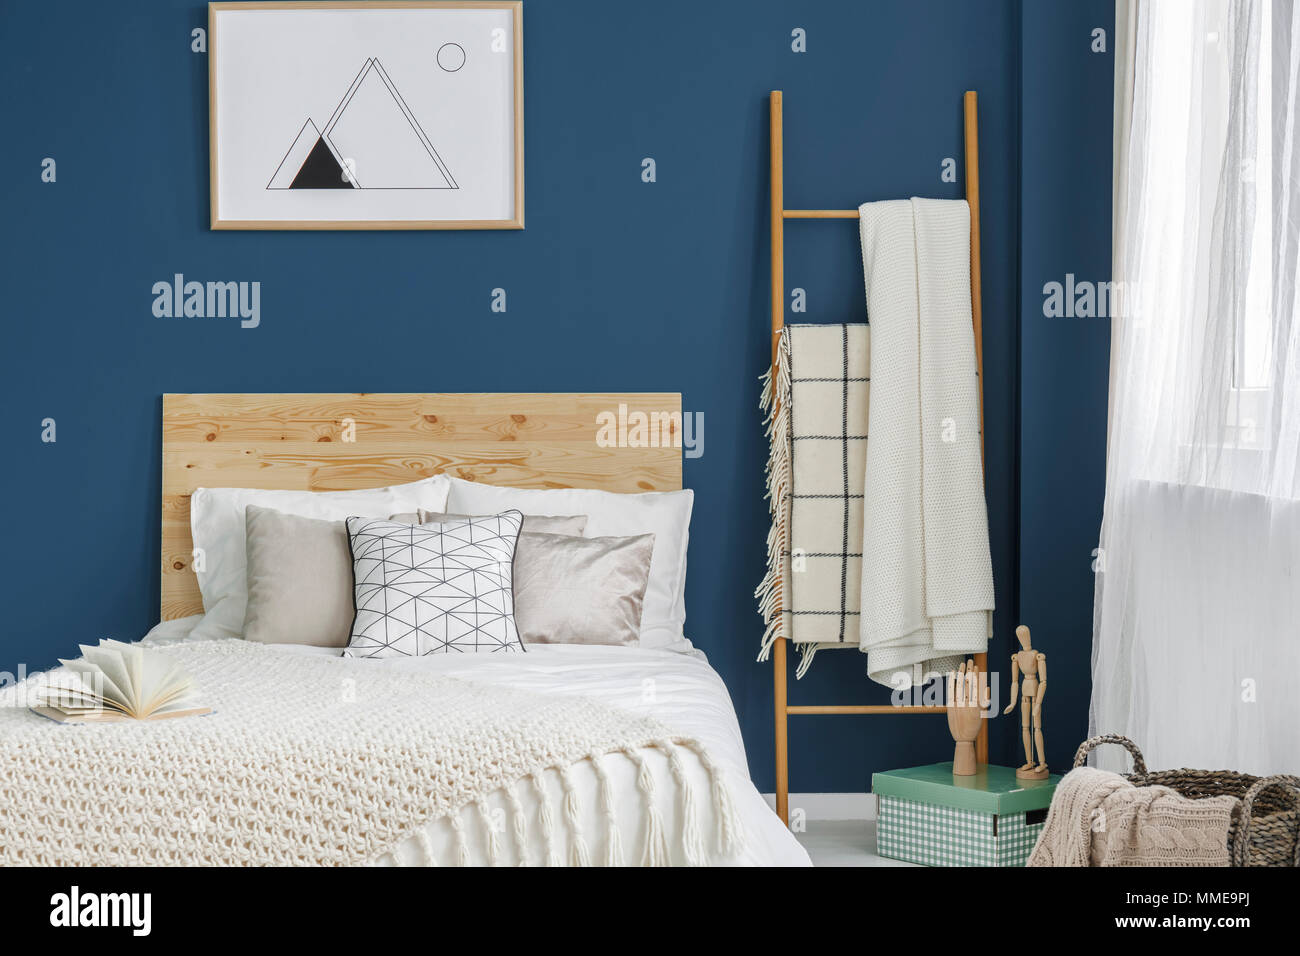 Double bed with wooden bedhead standing in blue room interior with window and simple poster on the wall - Stock Image